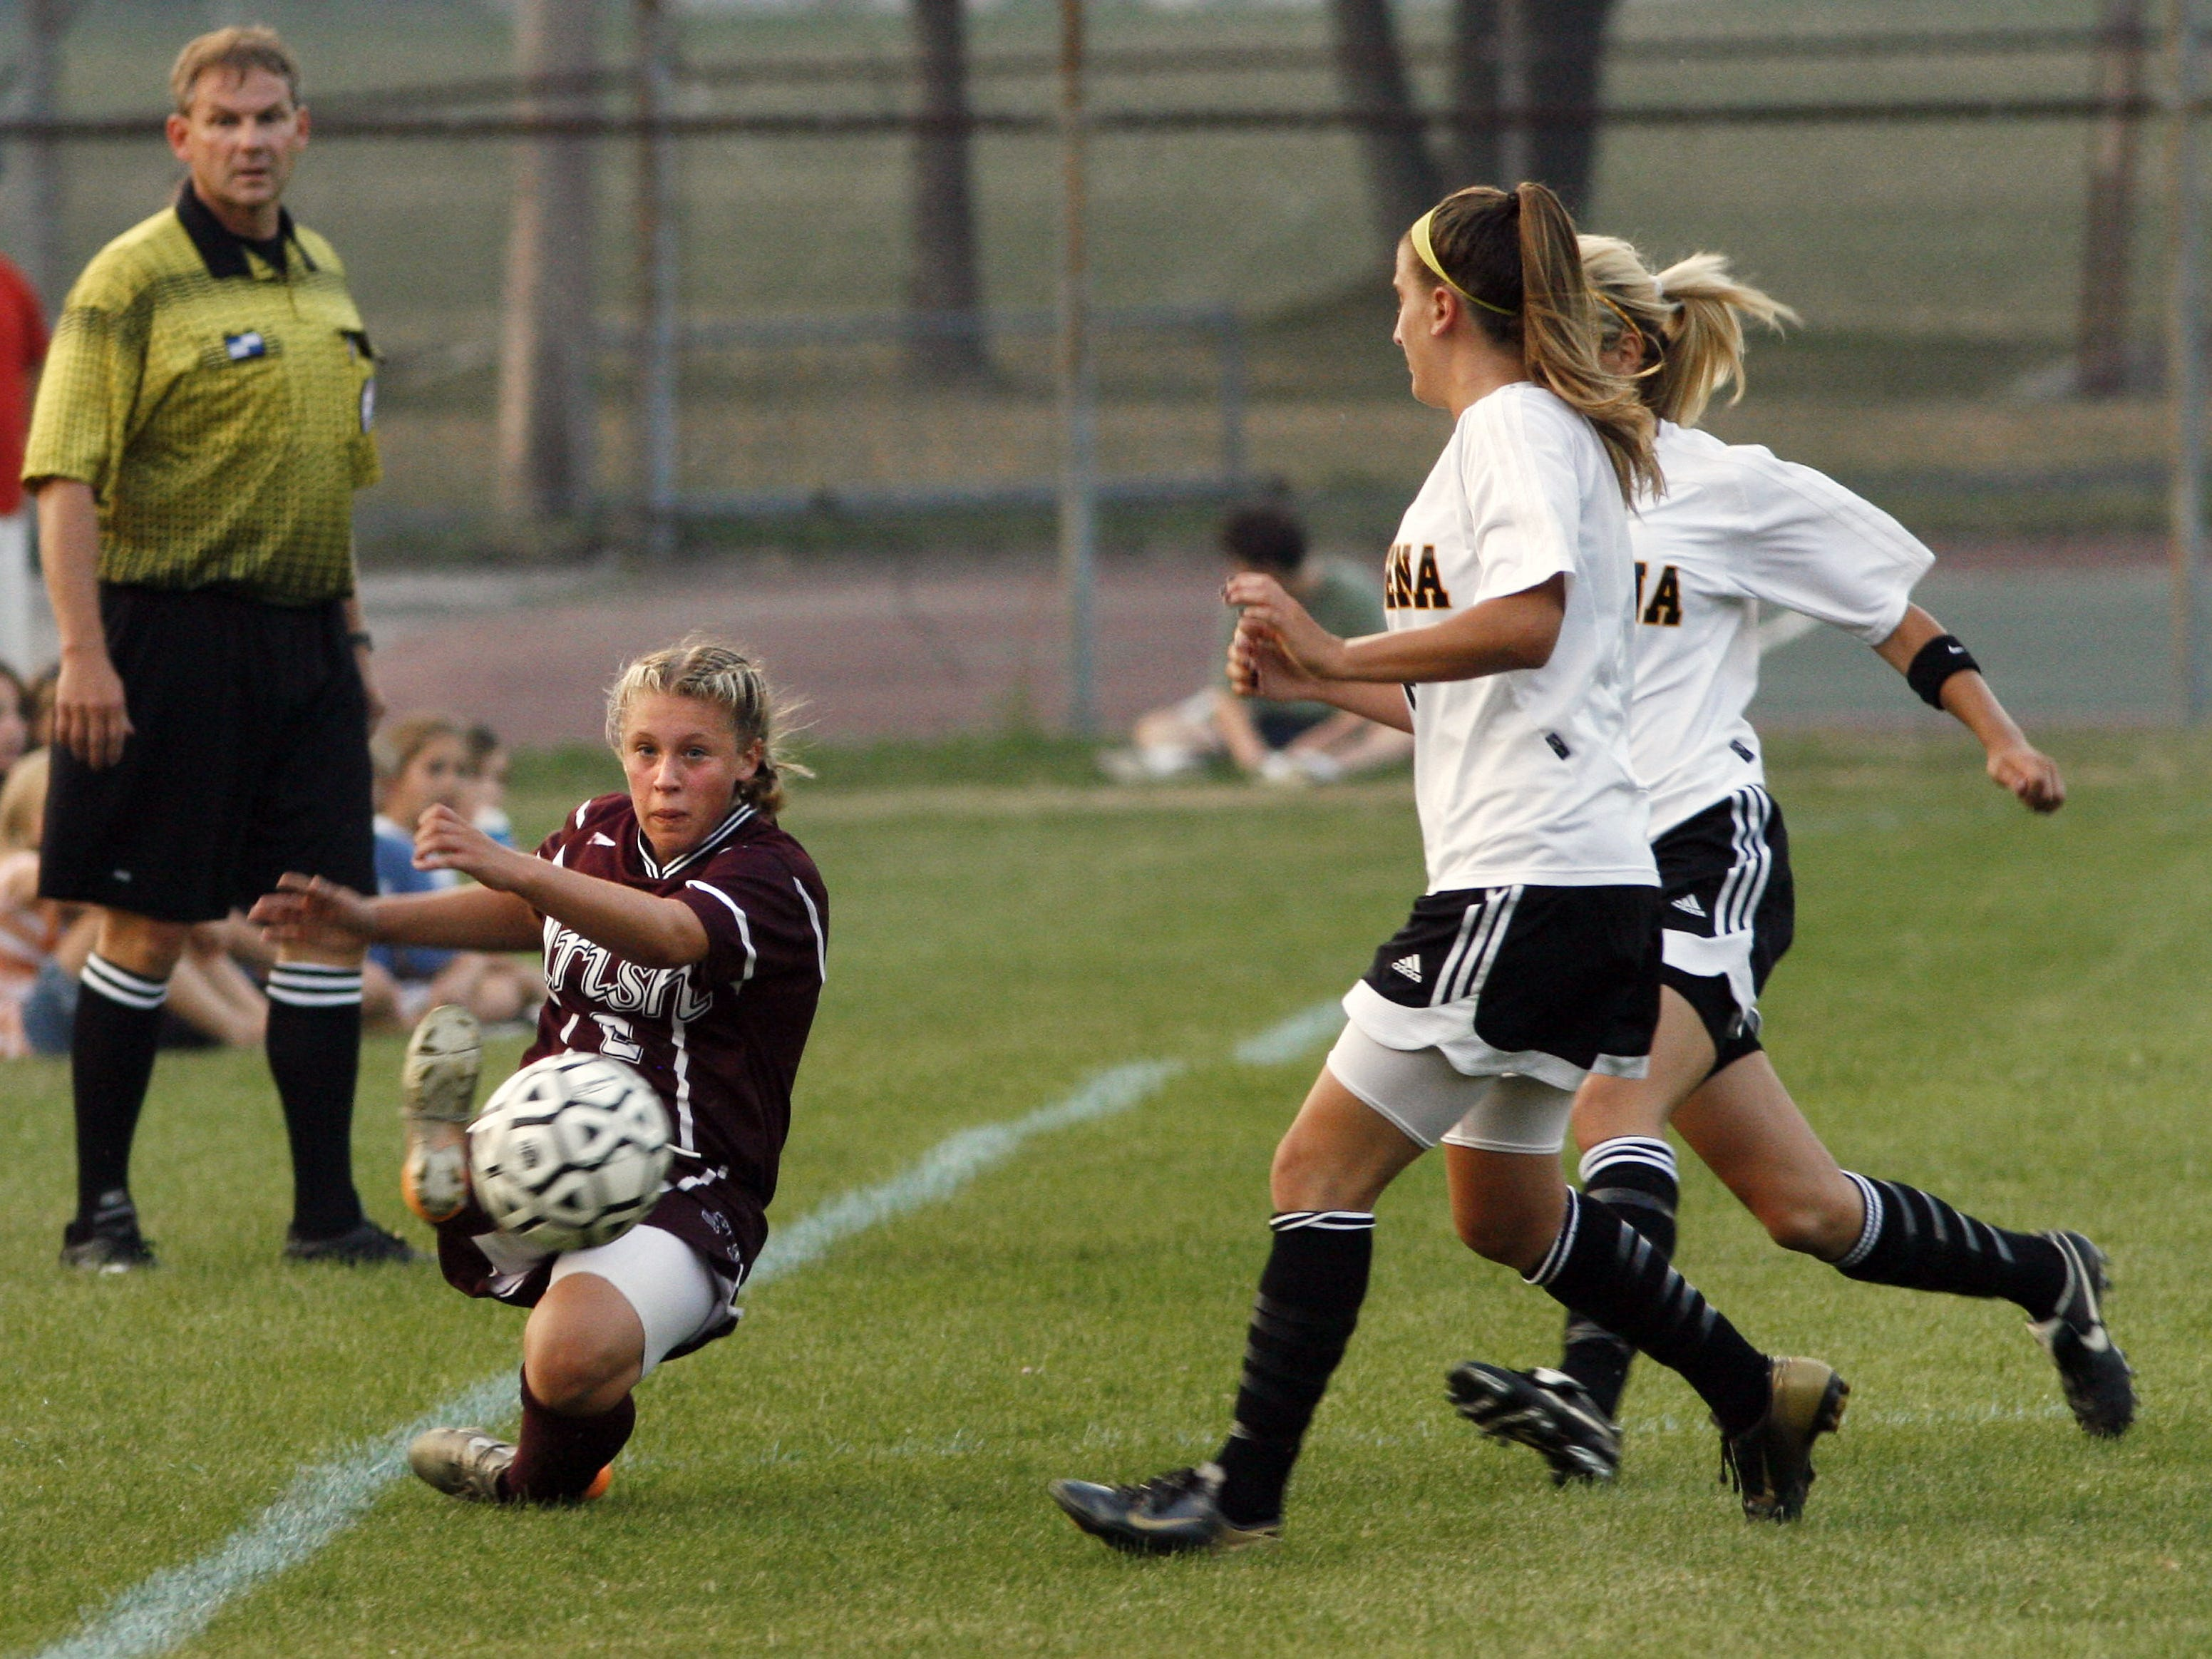 Aquinas' Ashley Hughes, left, makes a sliding play to keep the ball in bounds as Greece Athena players close in on Sept. 6, 2007.